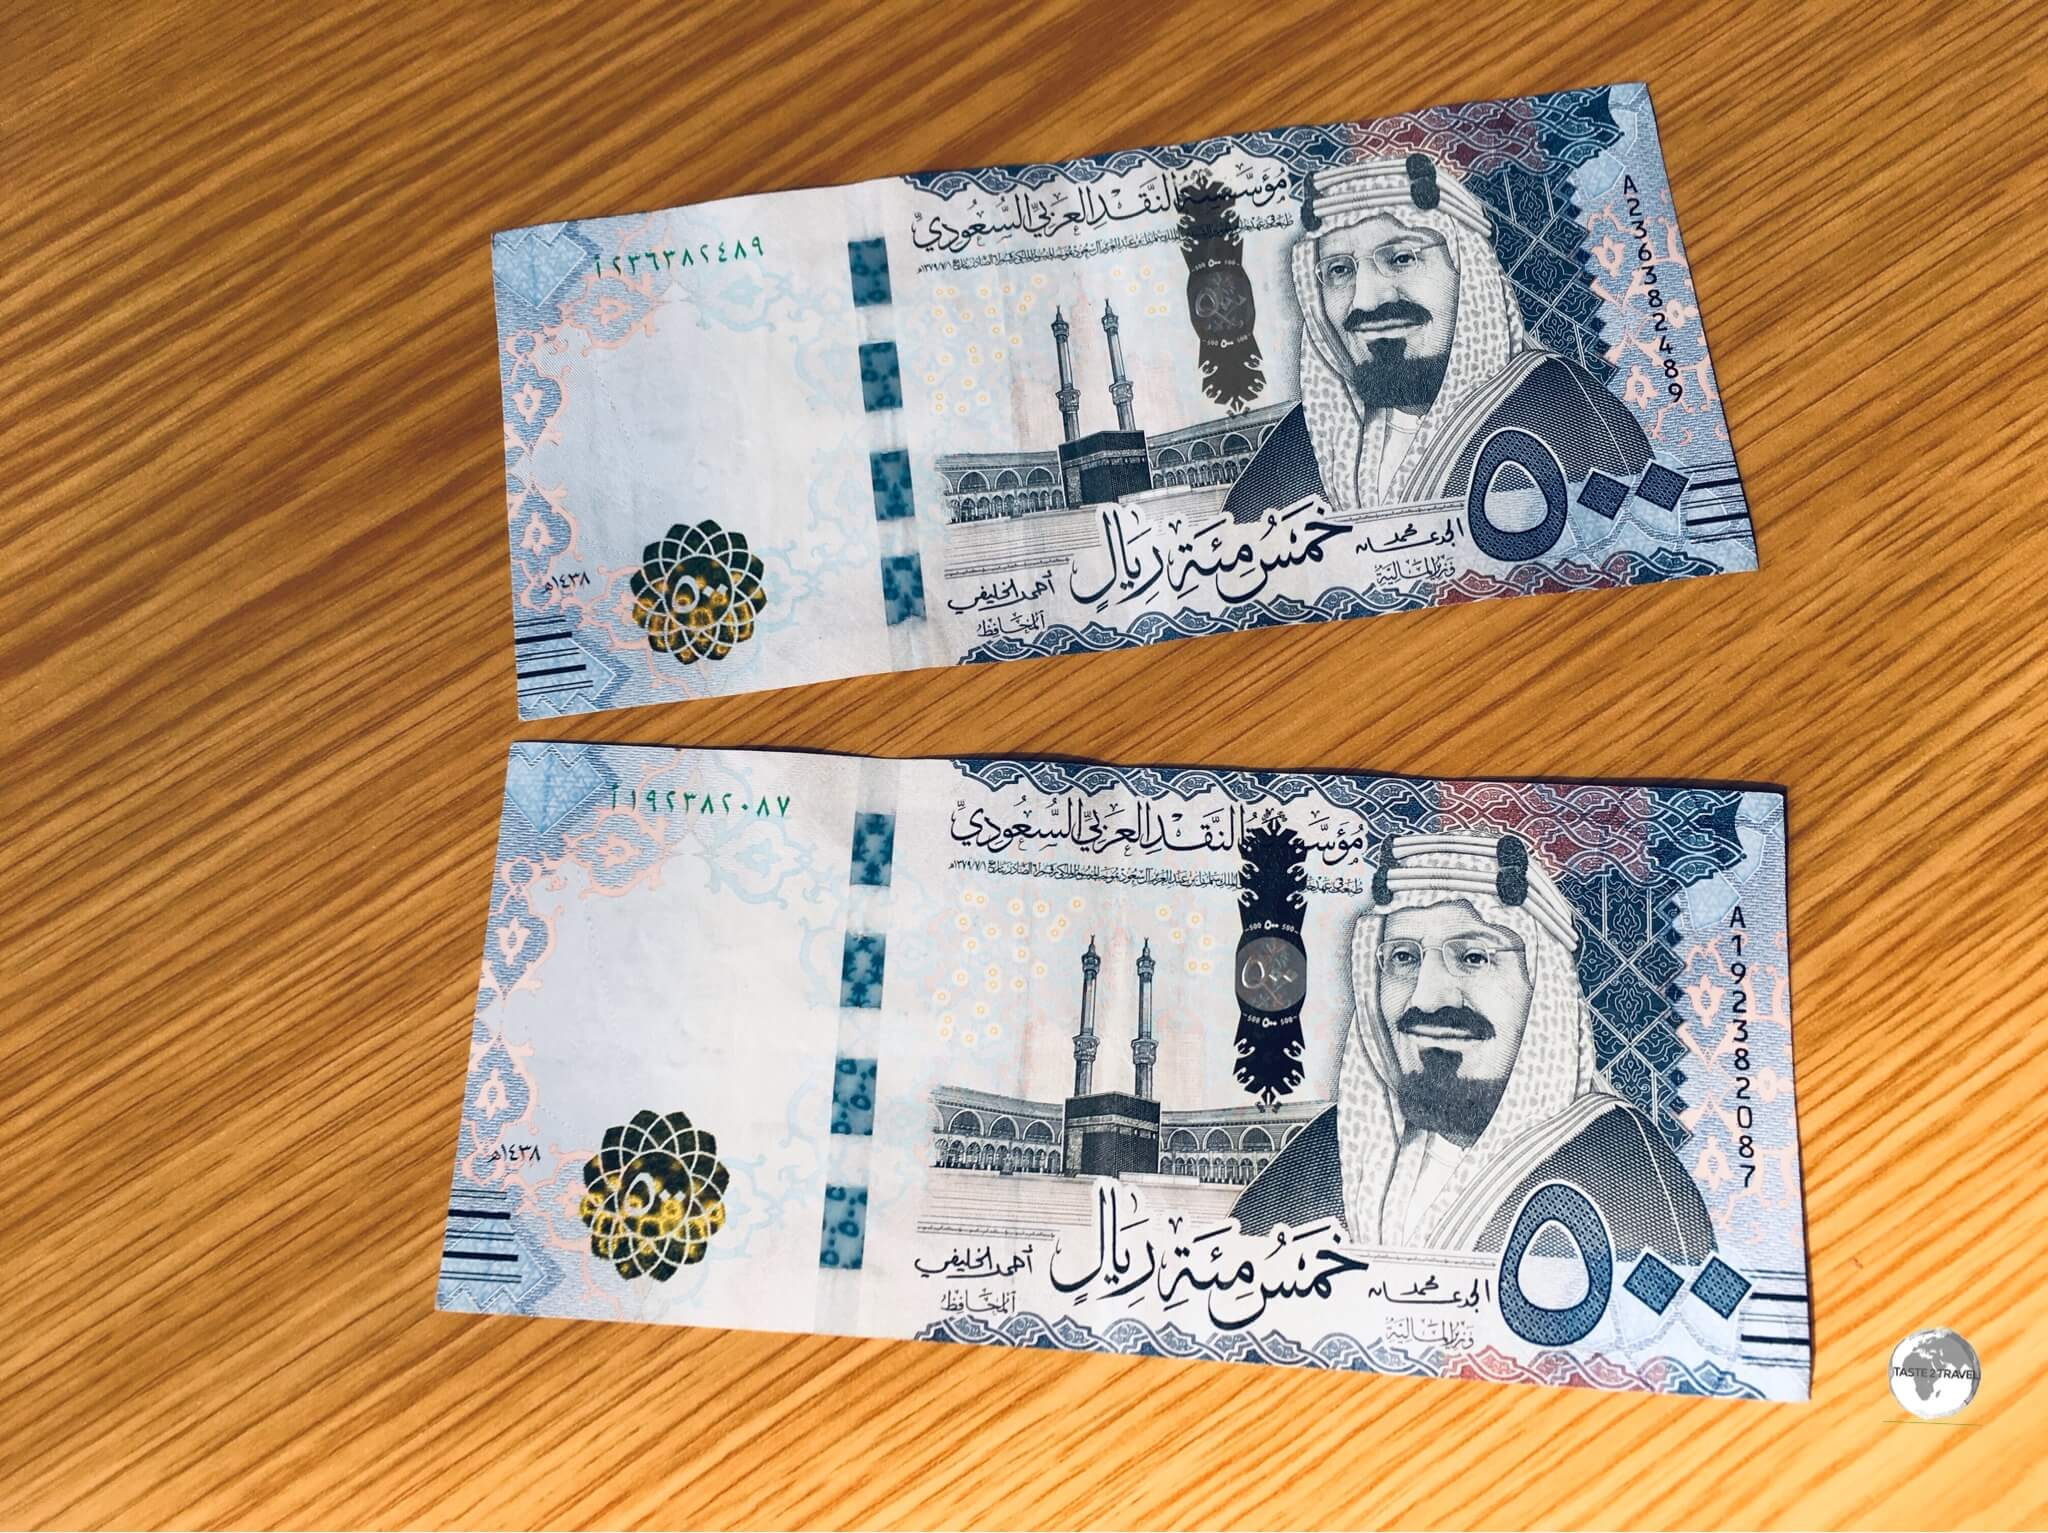 he 500 riyal note features a portrait of King Abdullah.